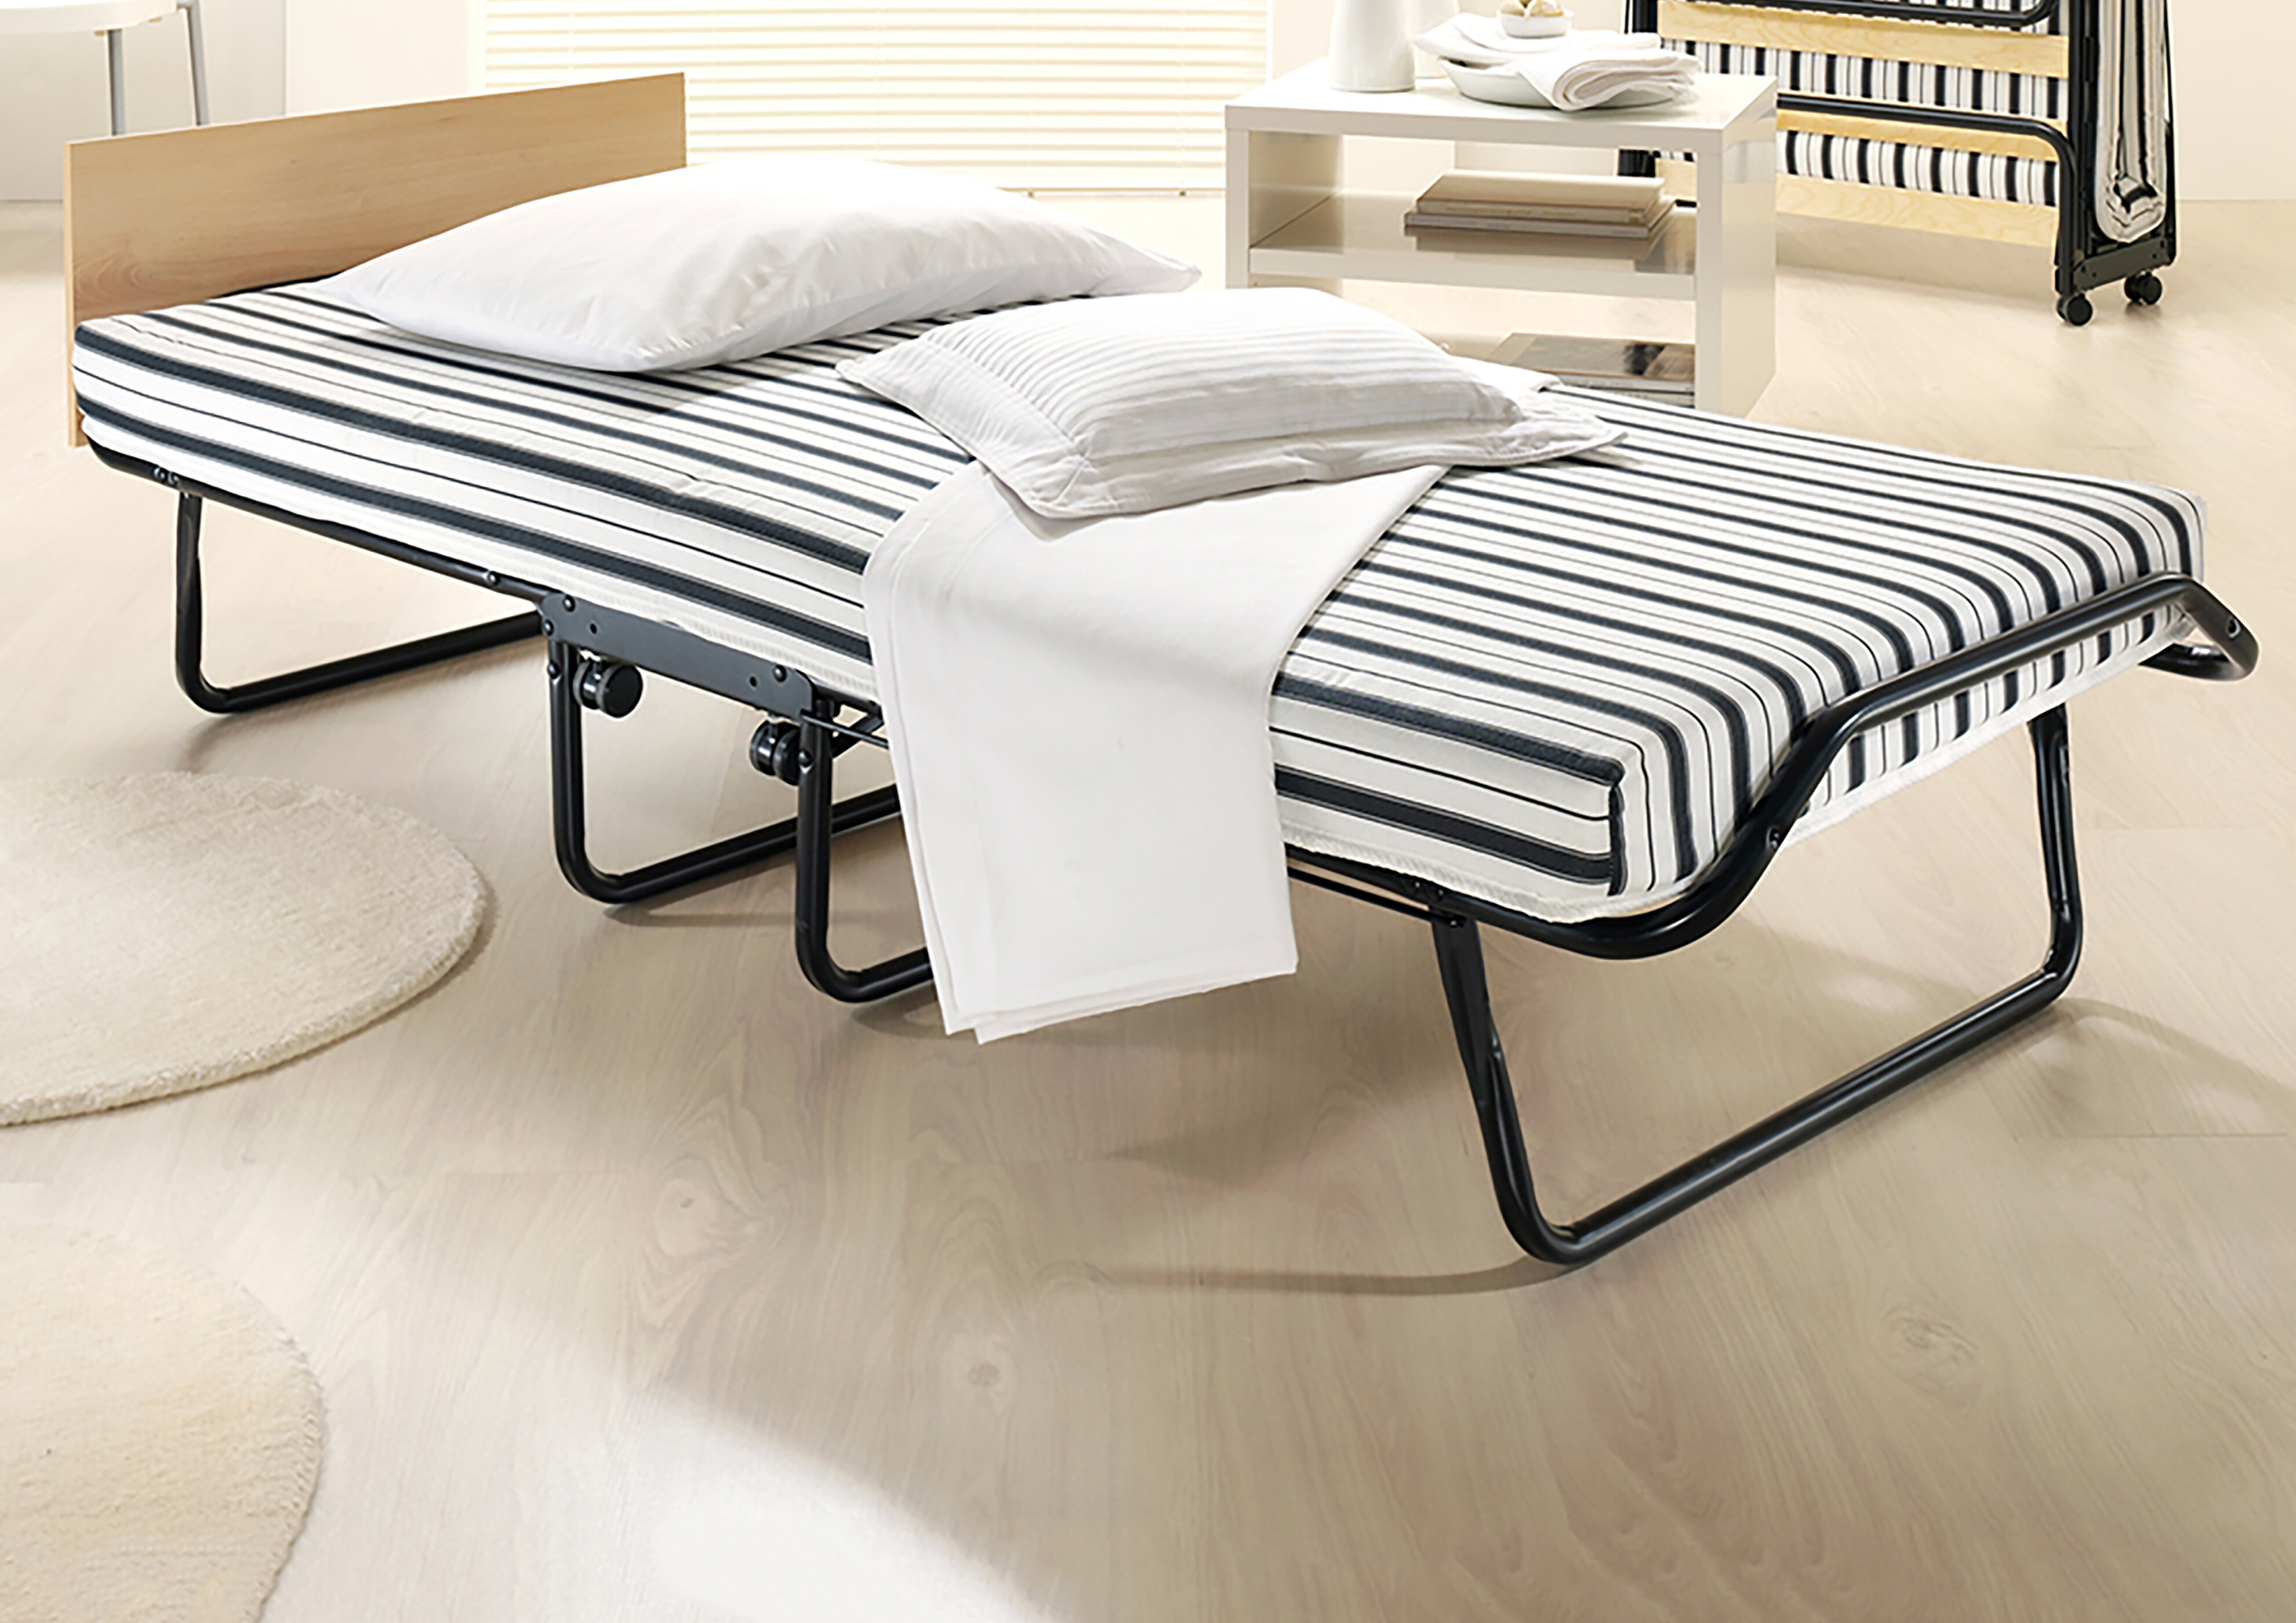 Jay Be Jubilee Folding Bed With